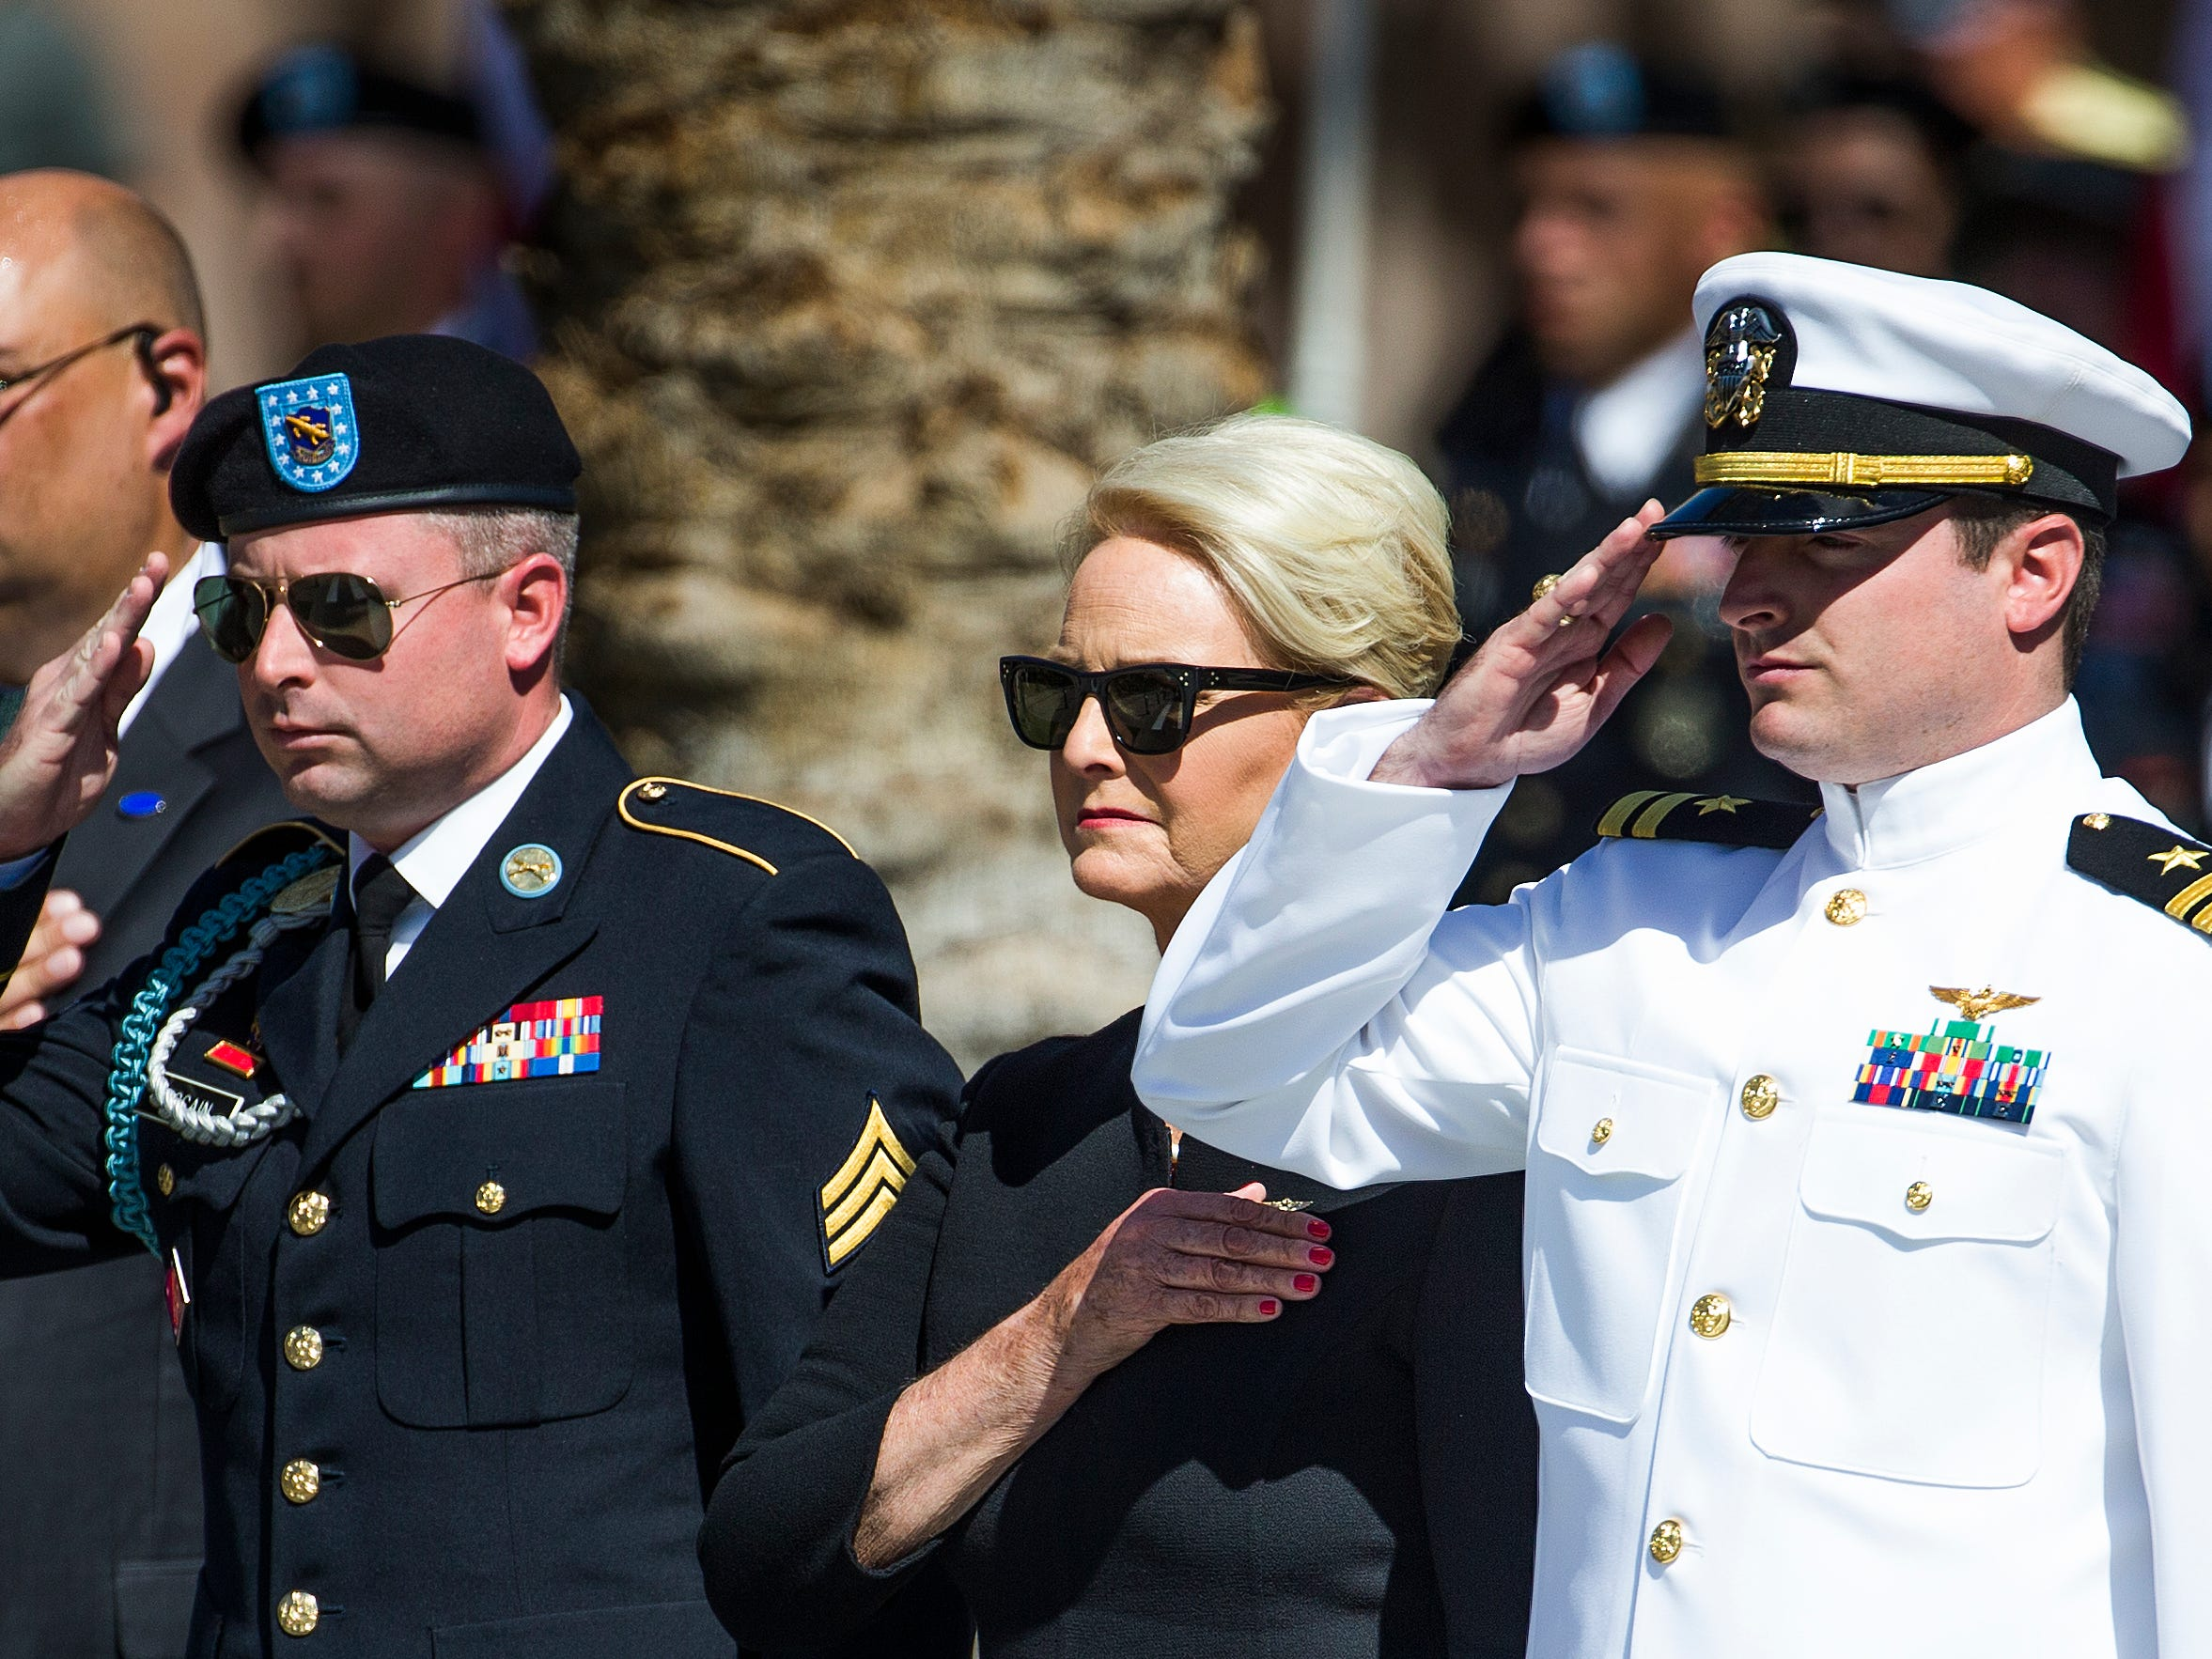 Cindy McCain and her family, along with Gov. Doug Ducey and his wife, salute as the casket of Sen. John McCain is taken from the hearse at the Capitol in Phoenix Wednesday morning, August 29, 2018. A memorial service for Sen. John McCain will be held and McCain's body will lie in state in the rotunda for the public to pay their final respects.